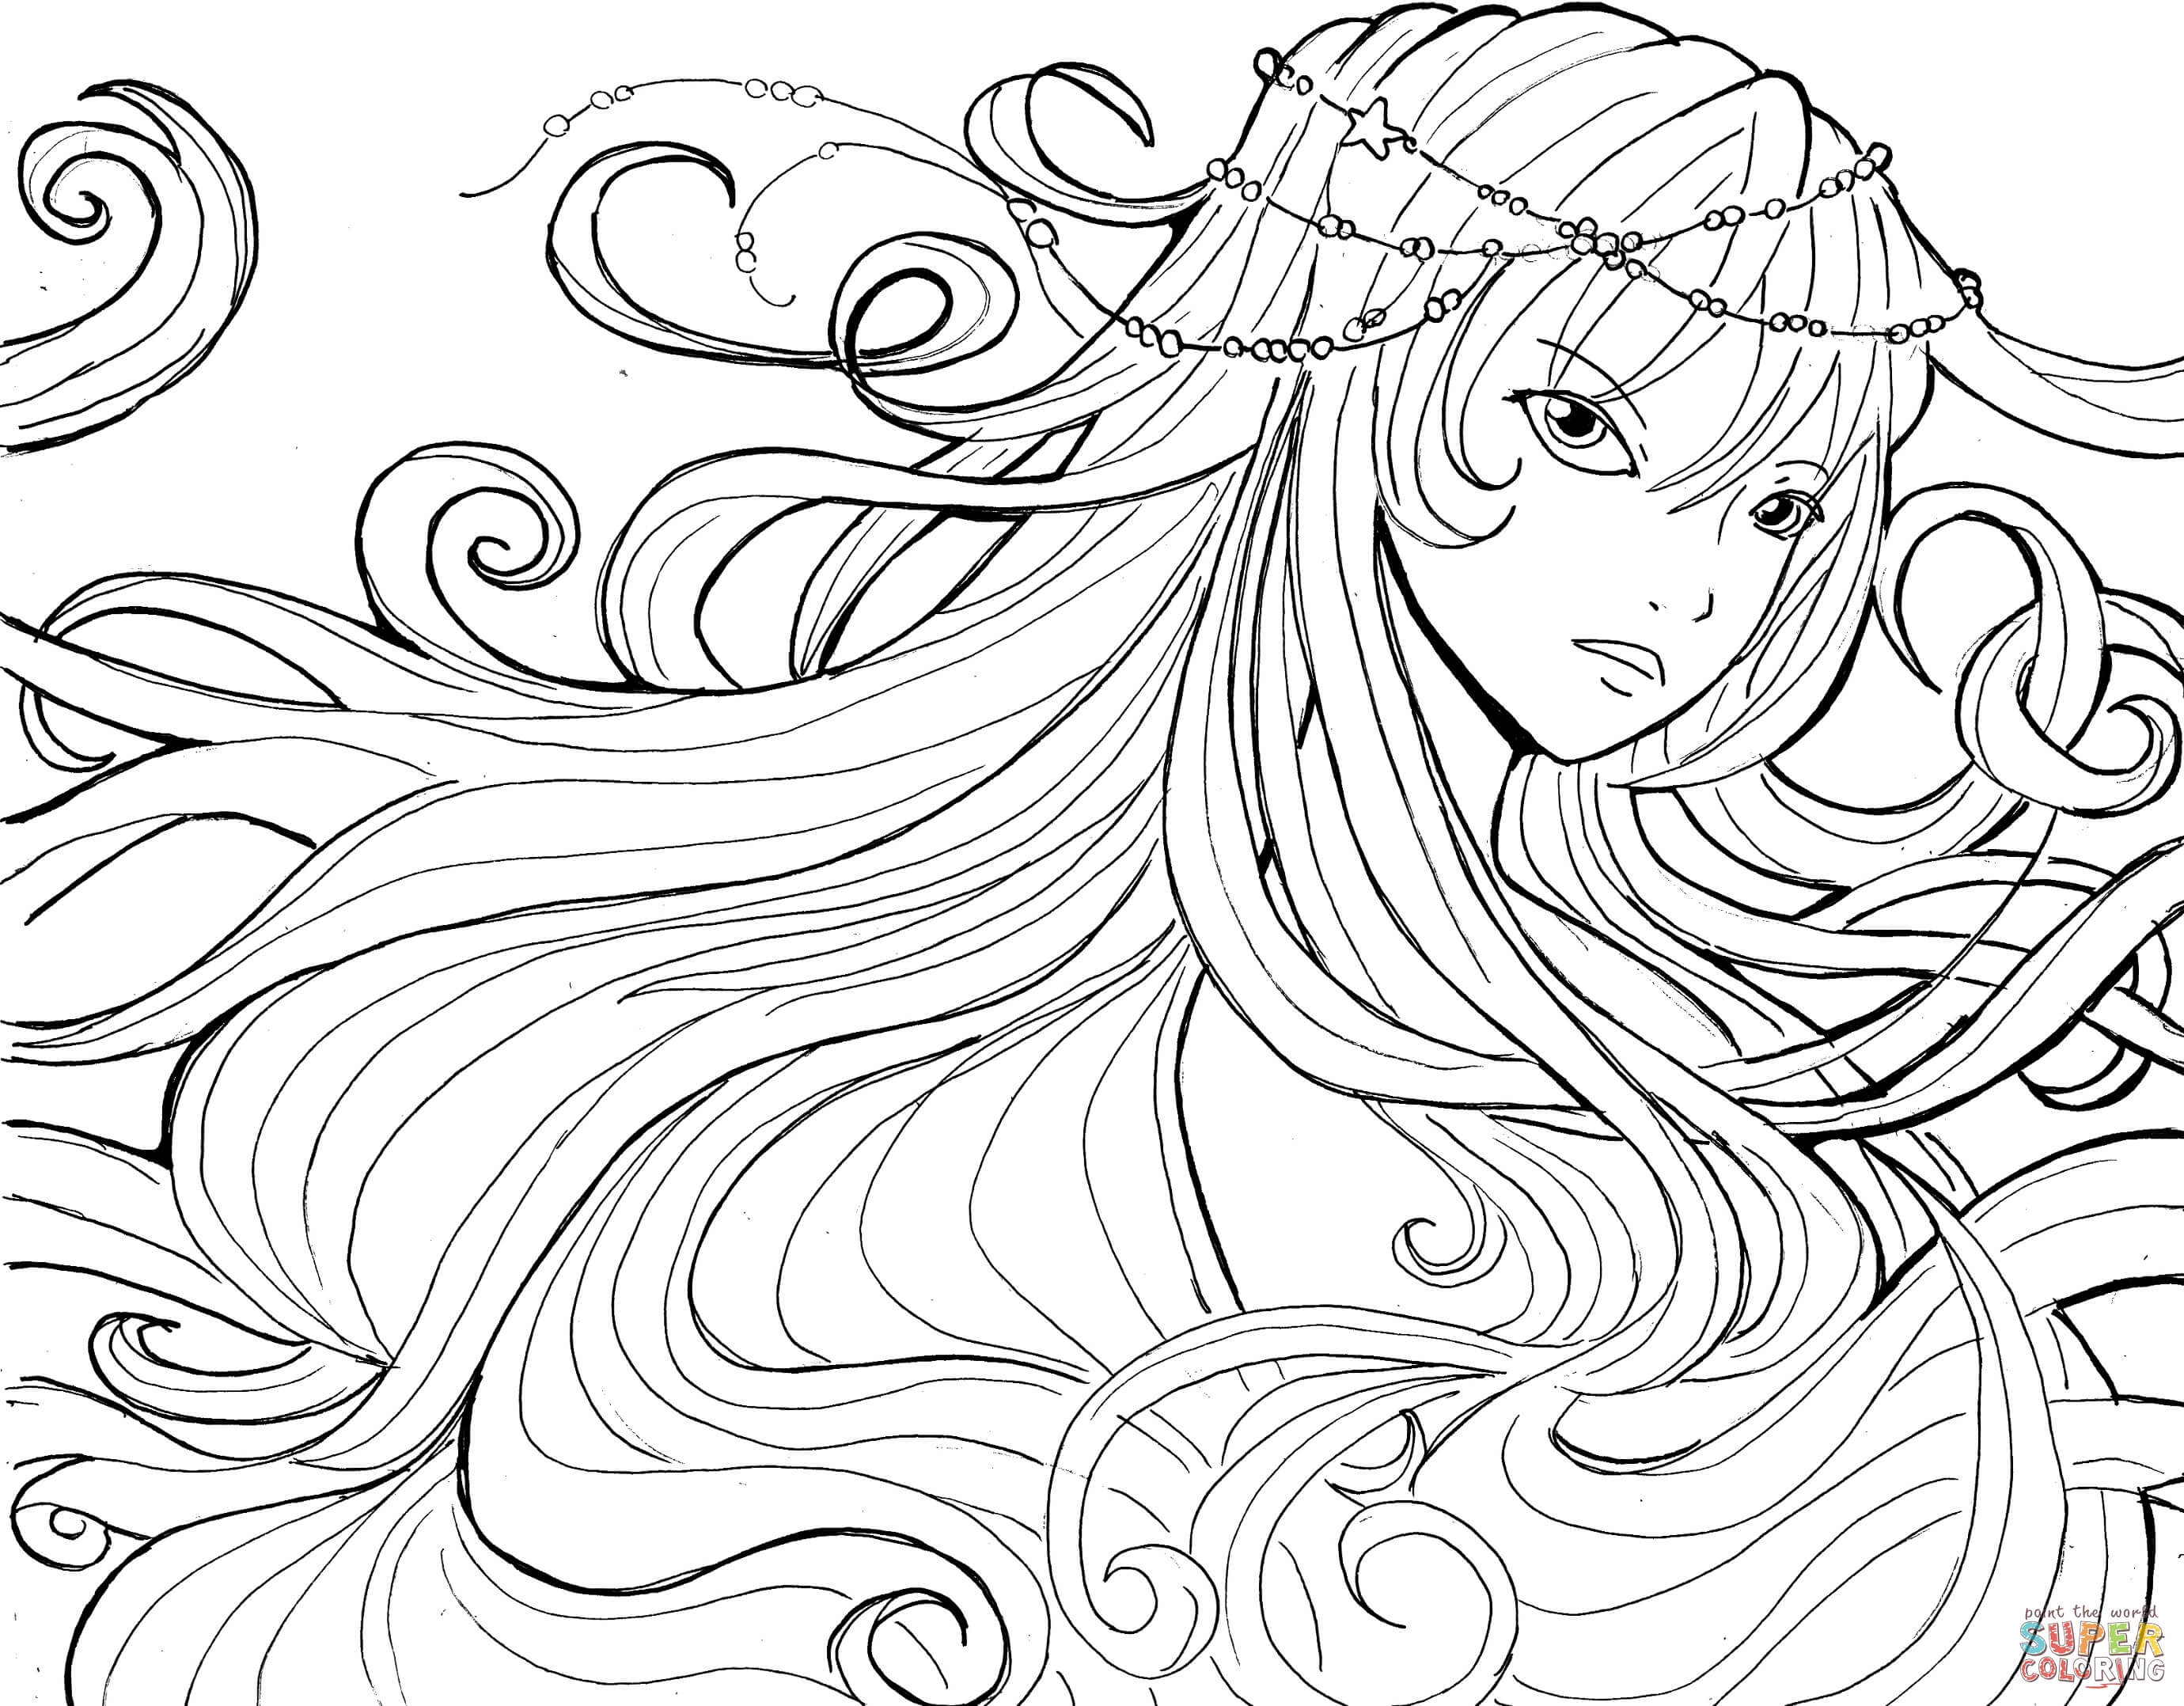 Fantasy anime coloring pages coloring home Coloring book wiki